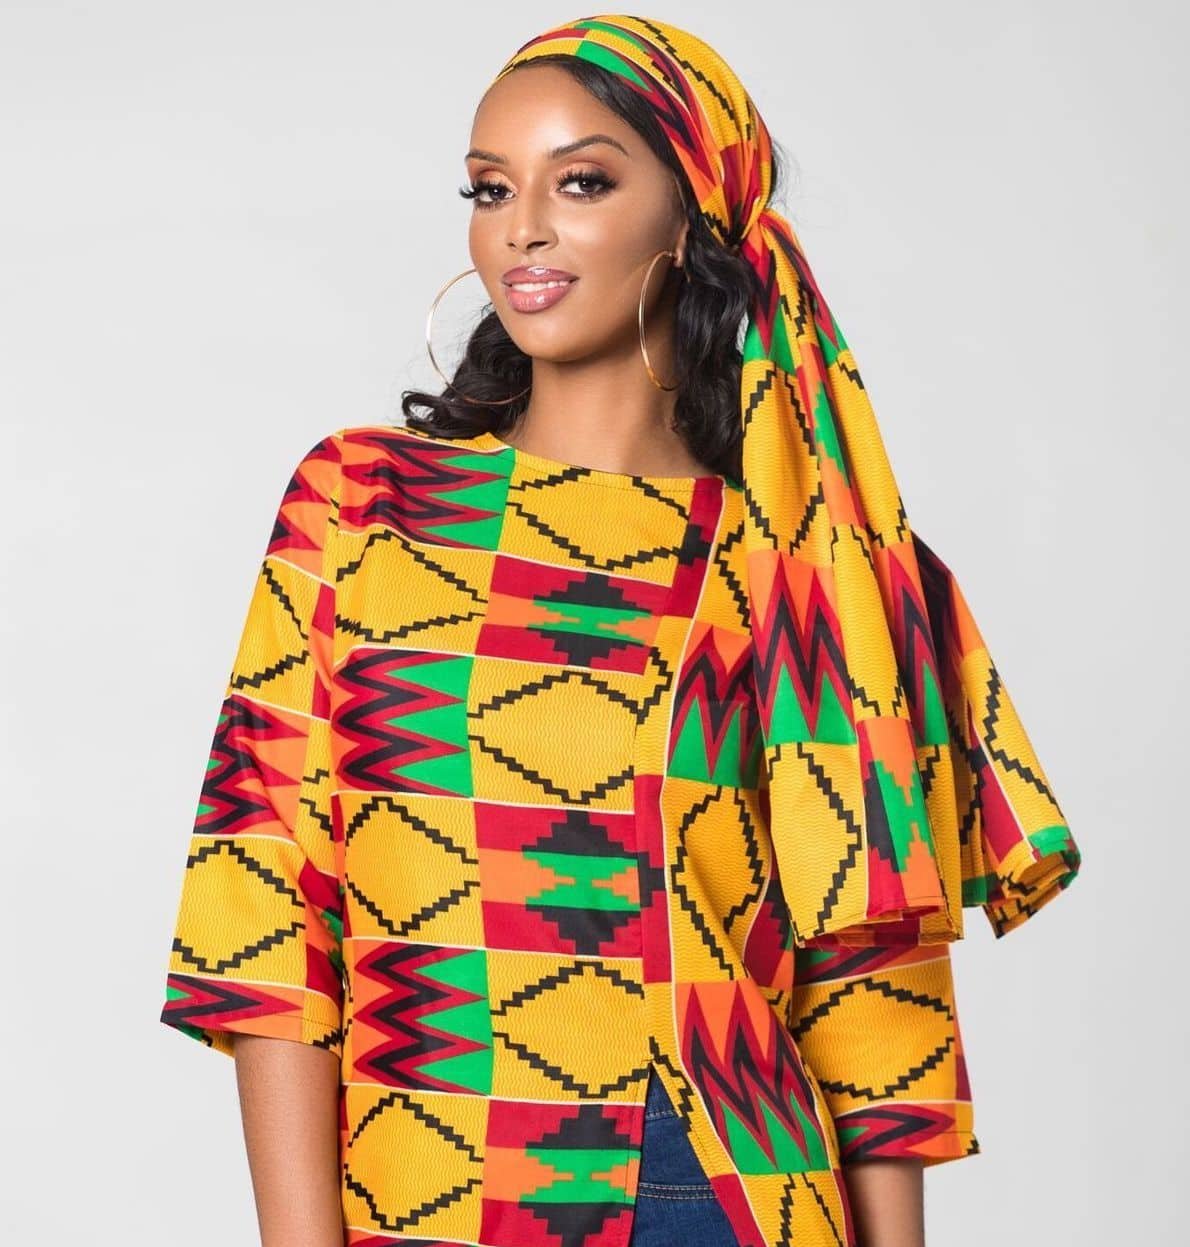 African print lover and fashion blogger, Louisa, shows us her top selection of over 15 best ankara head wraps available today. All your favorite styles in one place (+find out where to get them). Click to see all! #africanfashion #ankarastyles #ankarafashion